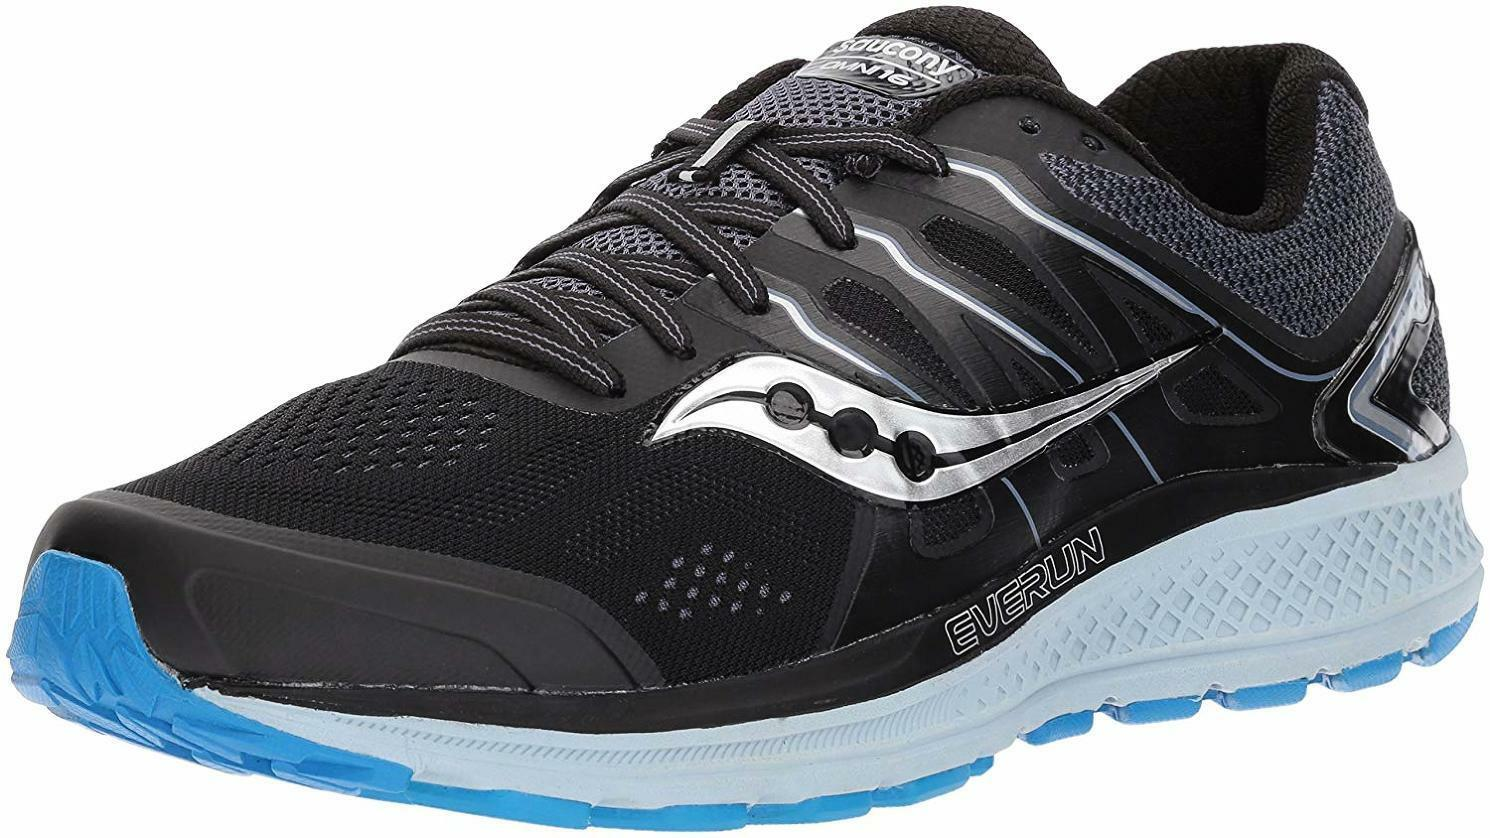 Saucony Men's Omni 16 Running shoes - Choose SZ color